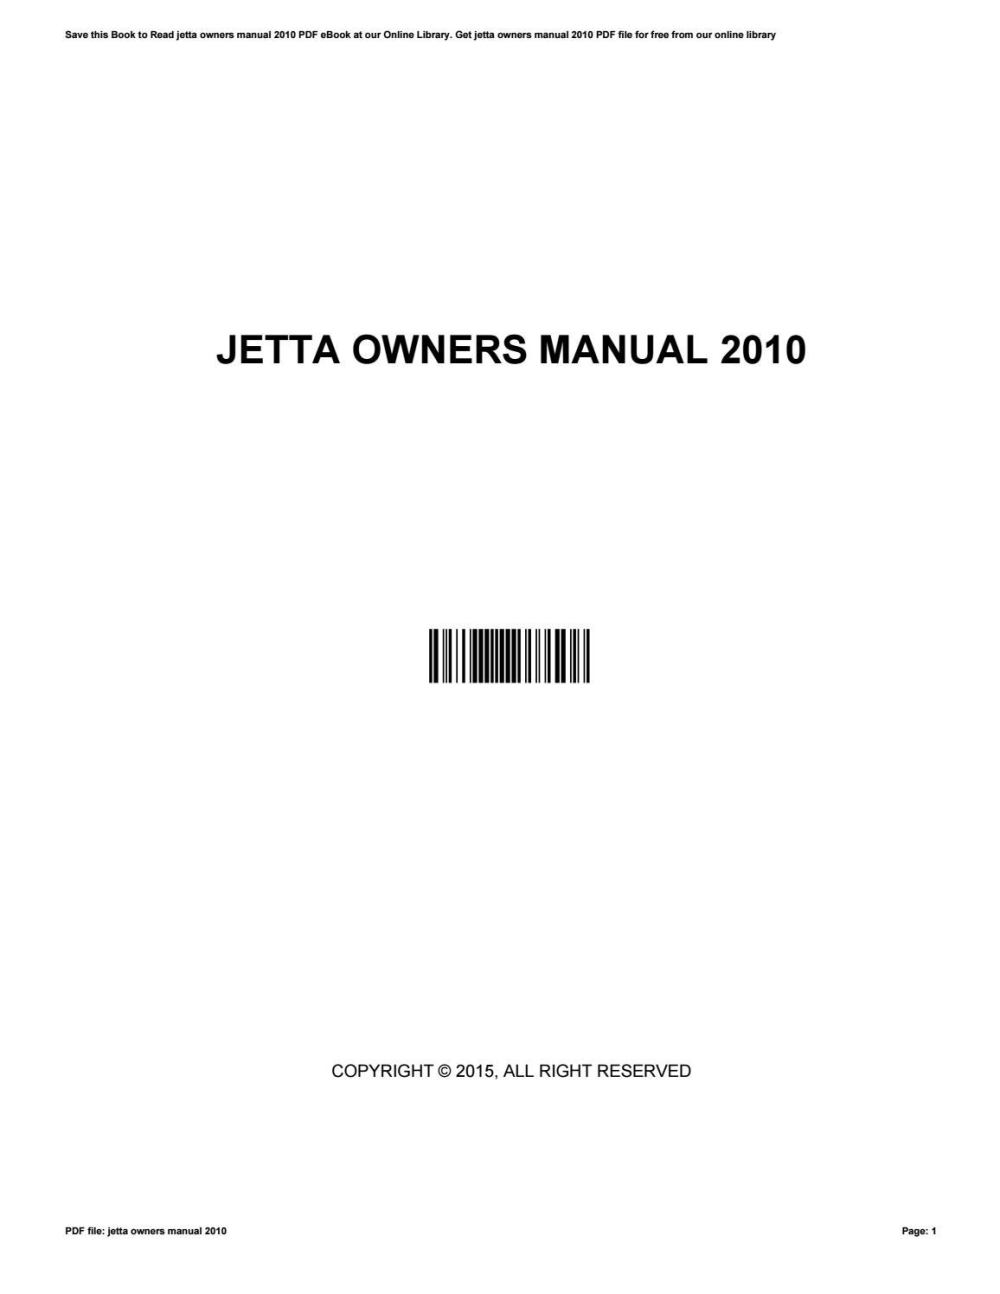 medium resolution of  array 2009 vw jetta owners manual pdf ebook rh 2009 vw jetta owners manual pdf